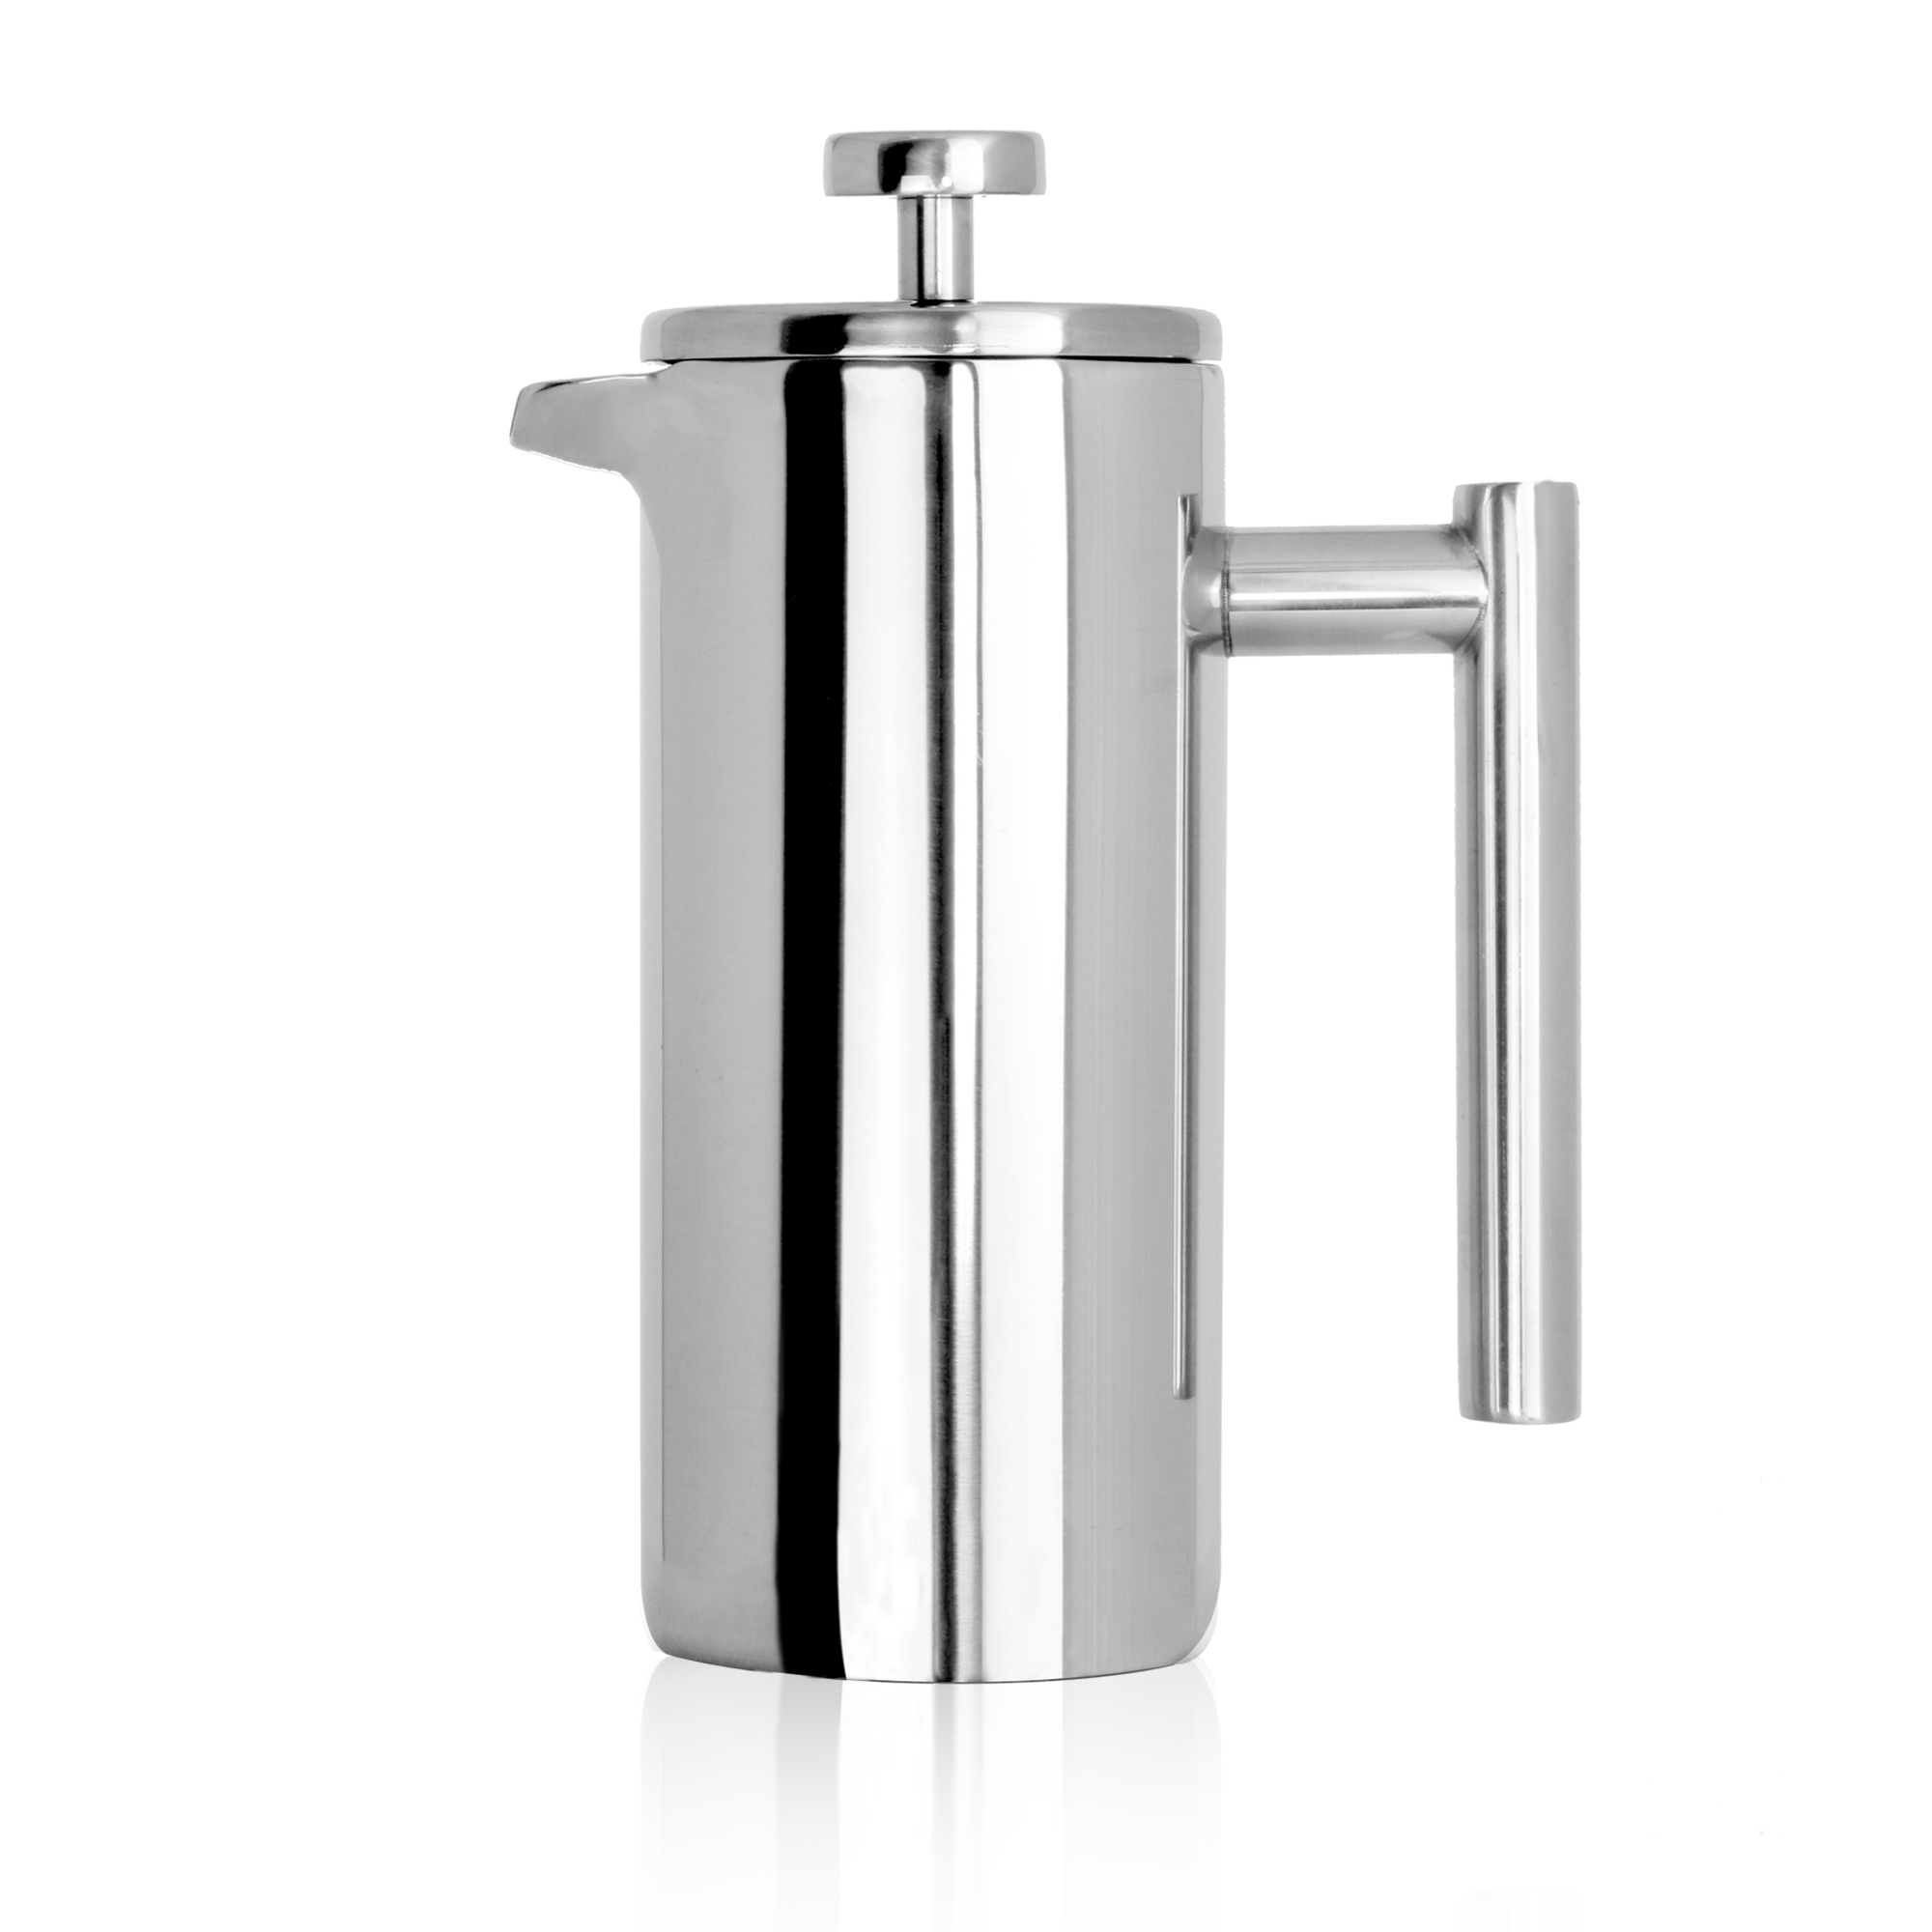 French-Press-Cafetiere-Steel-Coffee-Maker-FREE-Filters-amp-Spoons-M-amp-W miniatuur 5